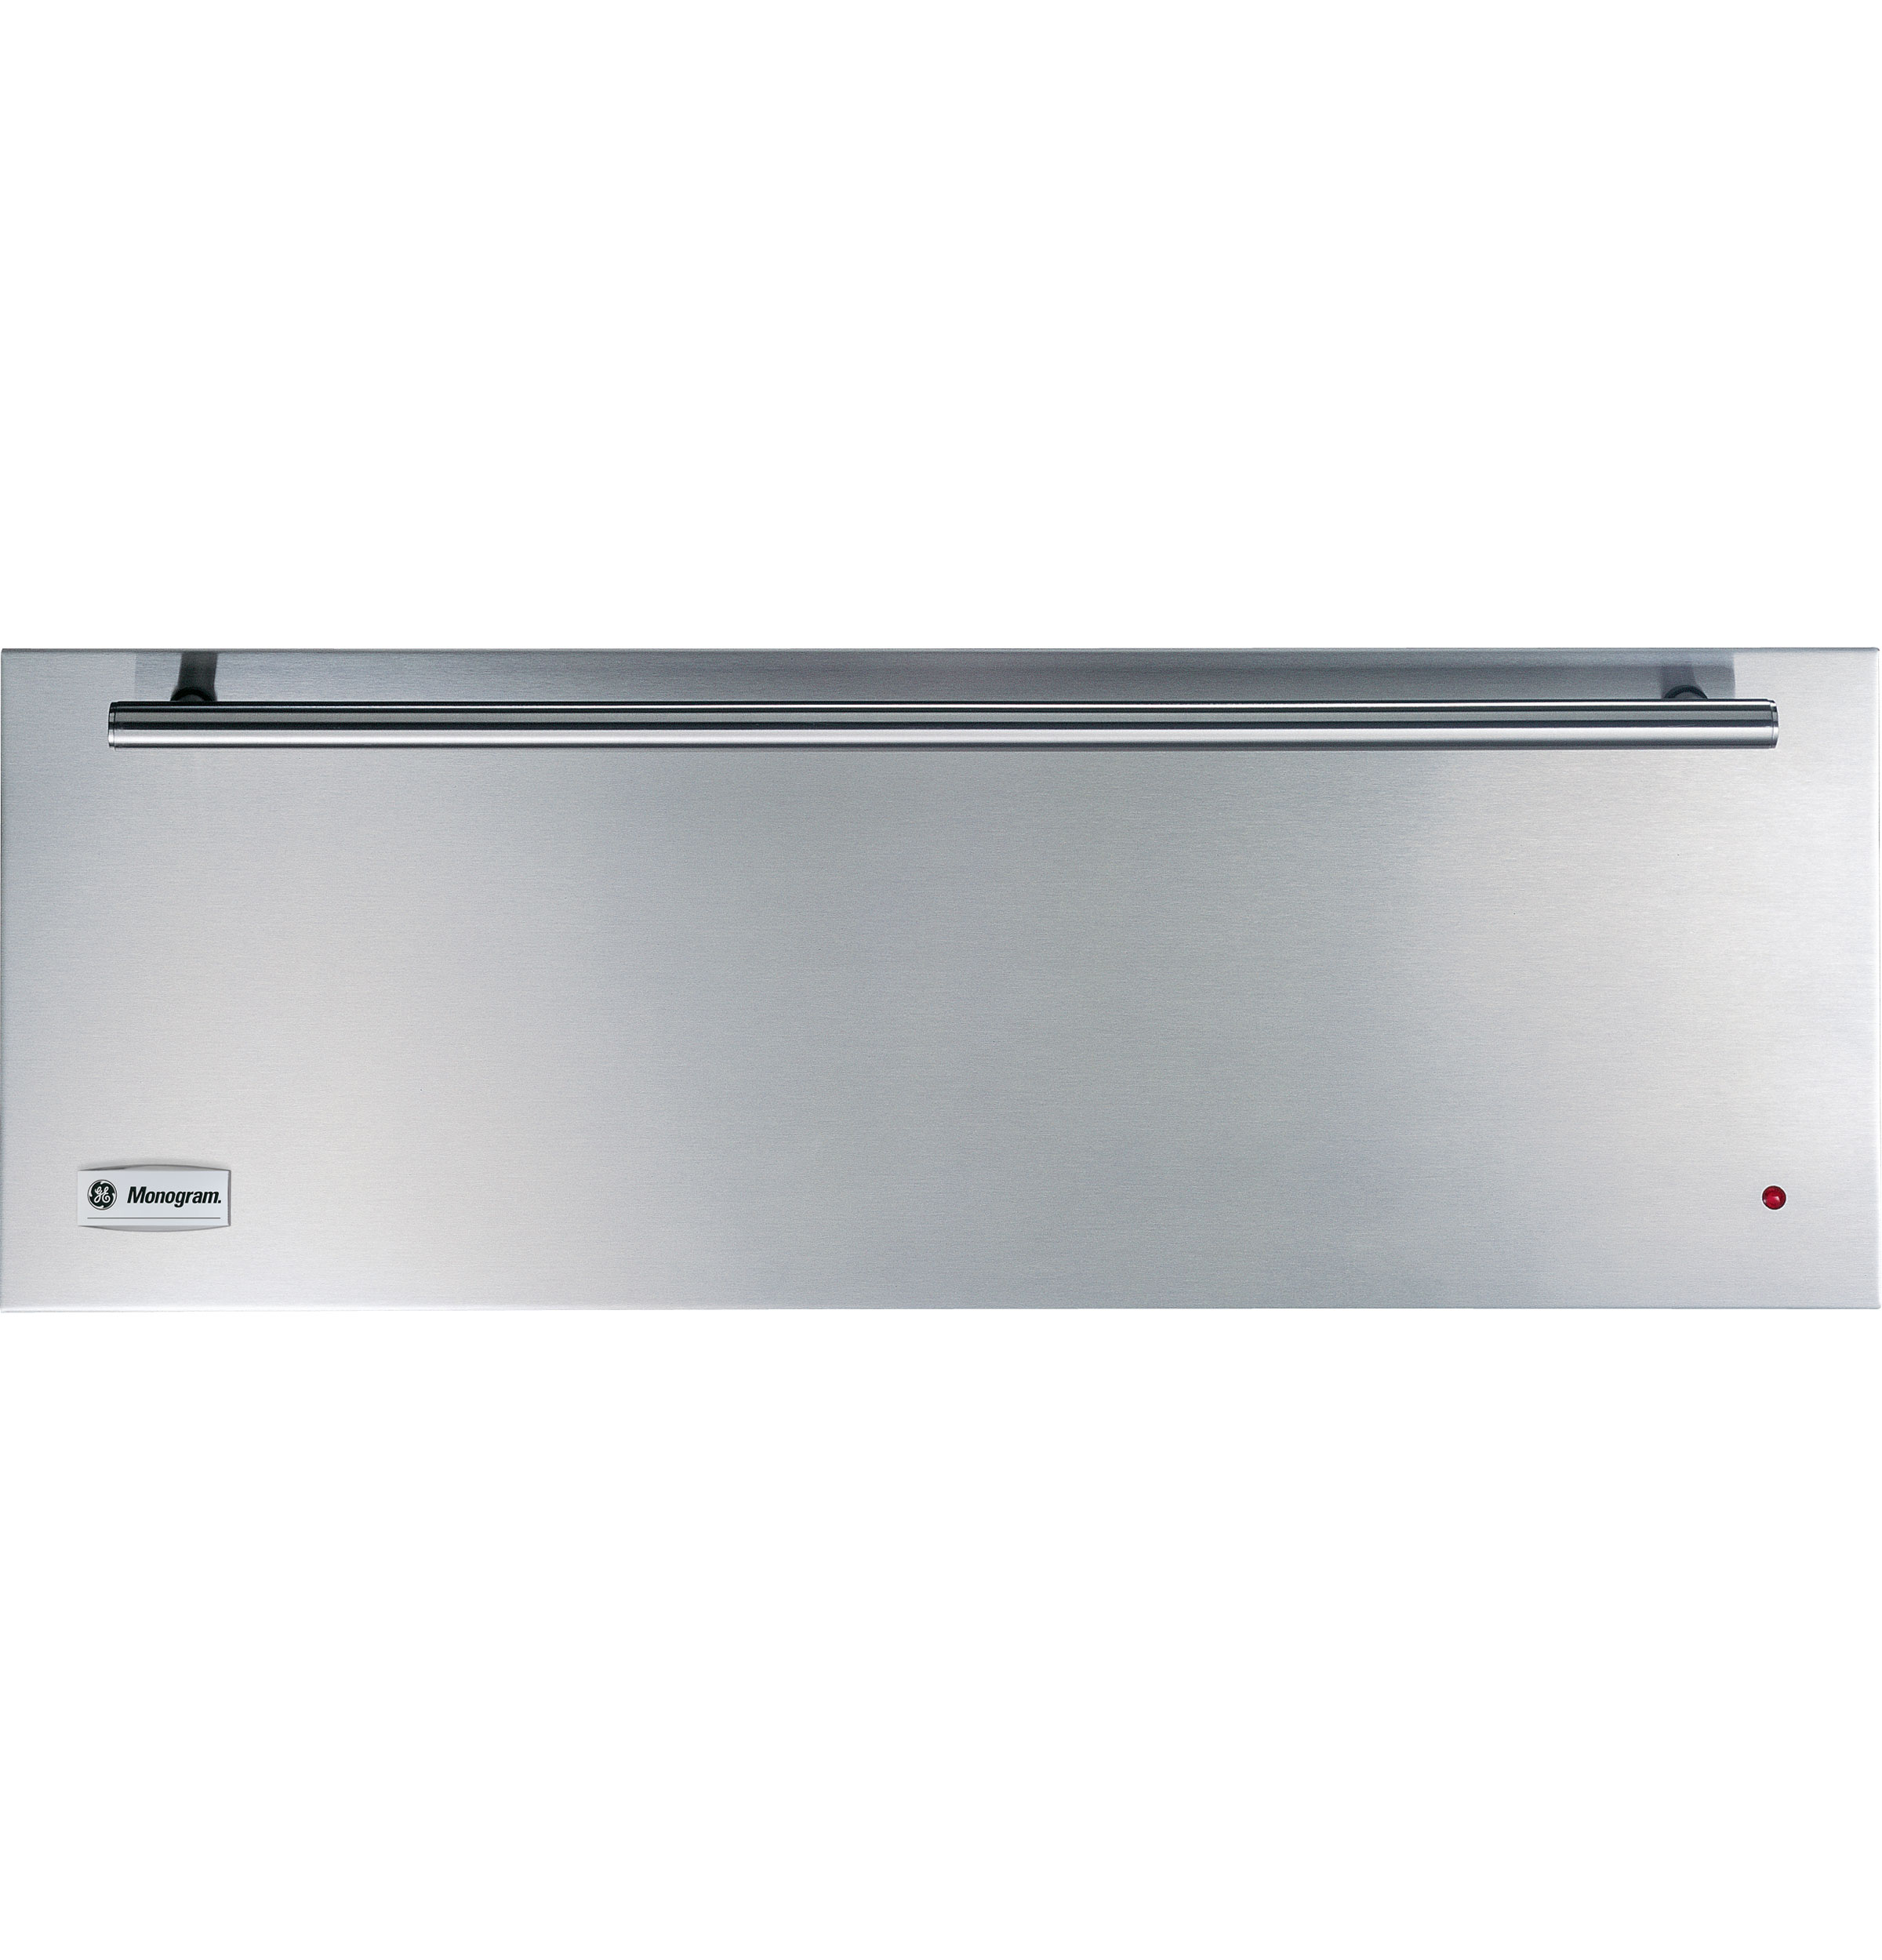 "Monogram GE Monogram® 30"" Stainless Steel Warming Drawer"